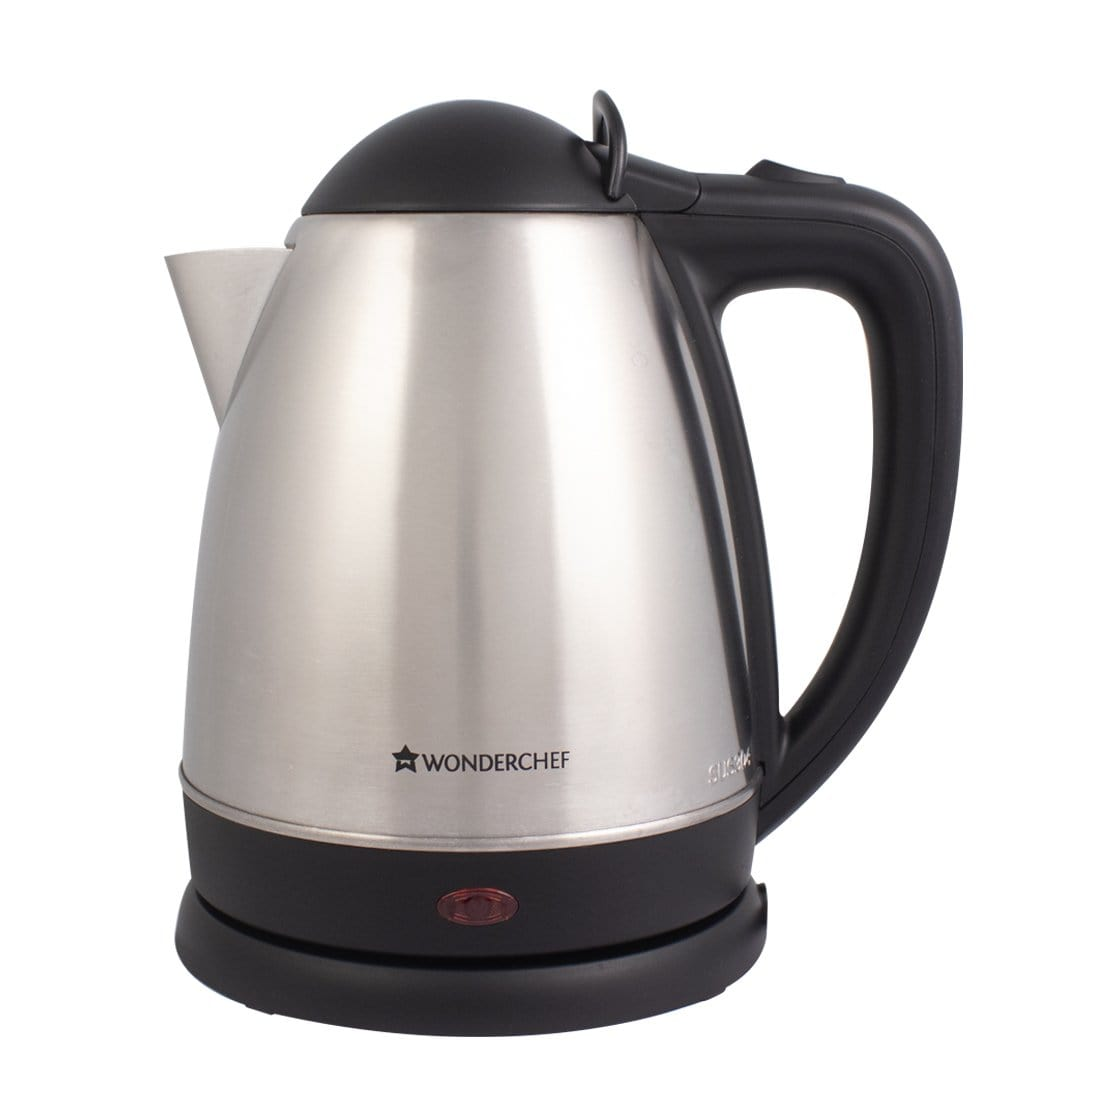 Wonderchef Prato Electric Kettle 1.5L